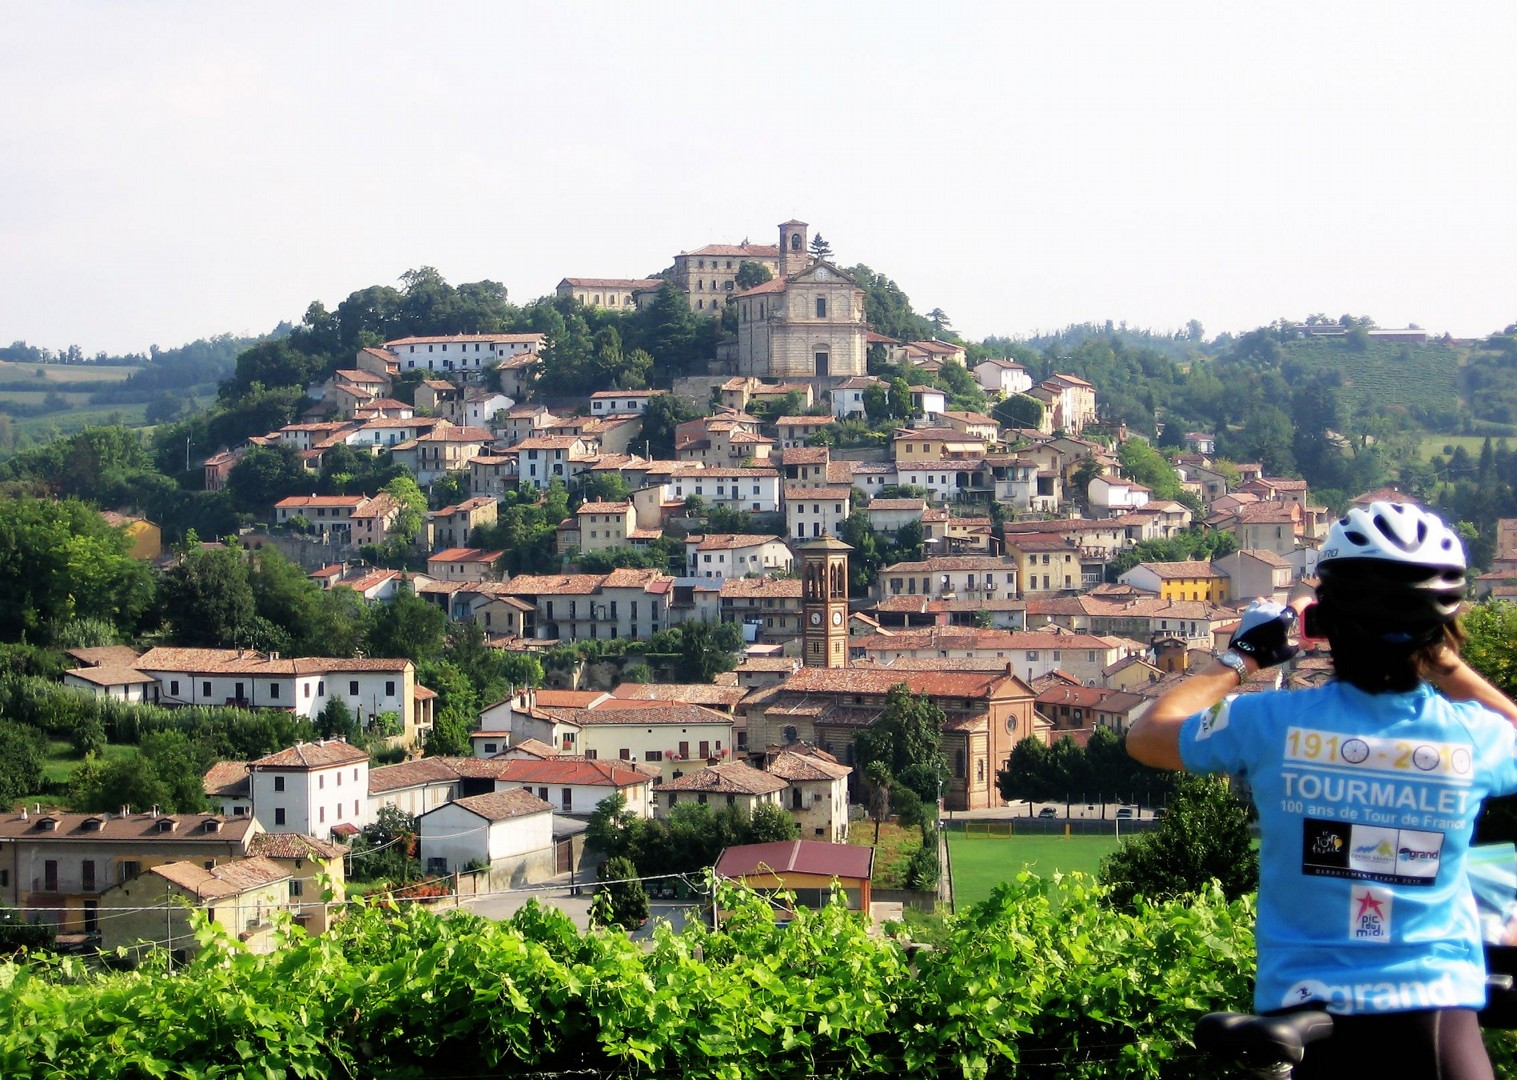 self-guided-leisure-cycling-holiday-italy-piemontes-vineyards-and-views.JPG - Italy - Piemonte - Vineyards and Views - Self-Guided Leisure Cycling Holiday - Leisure Cycling